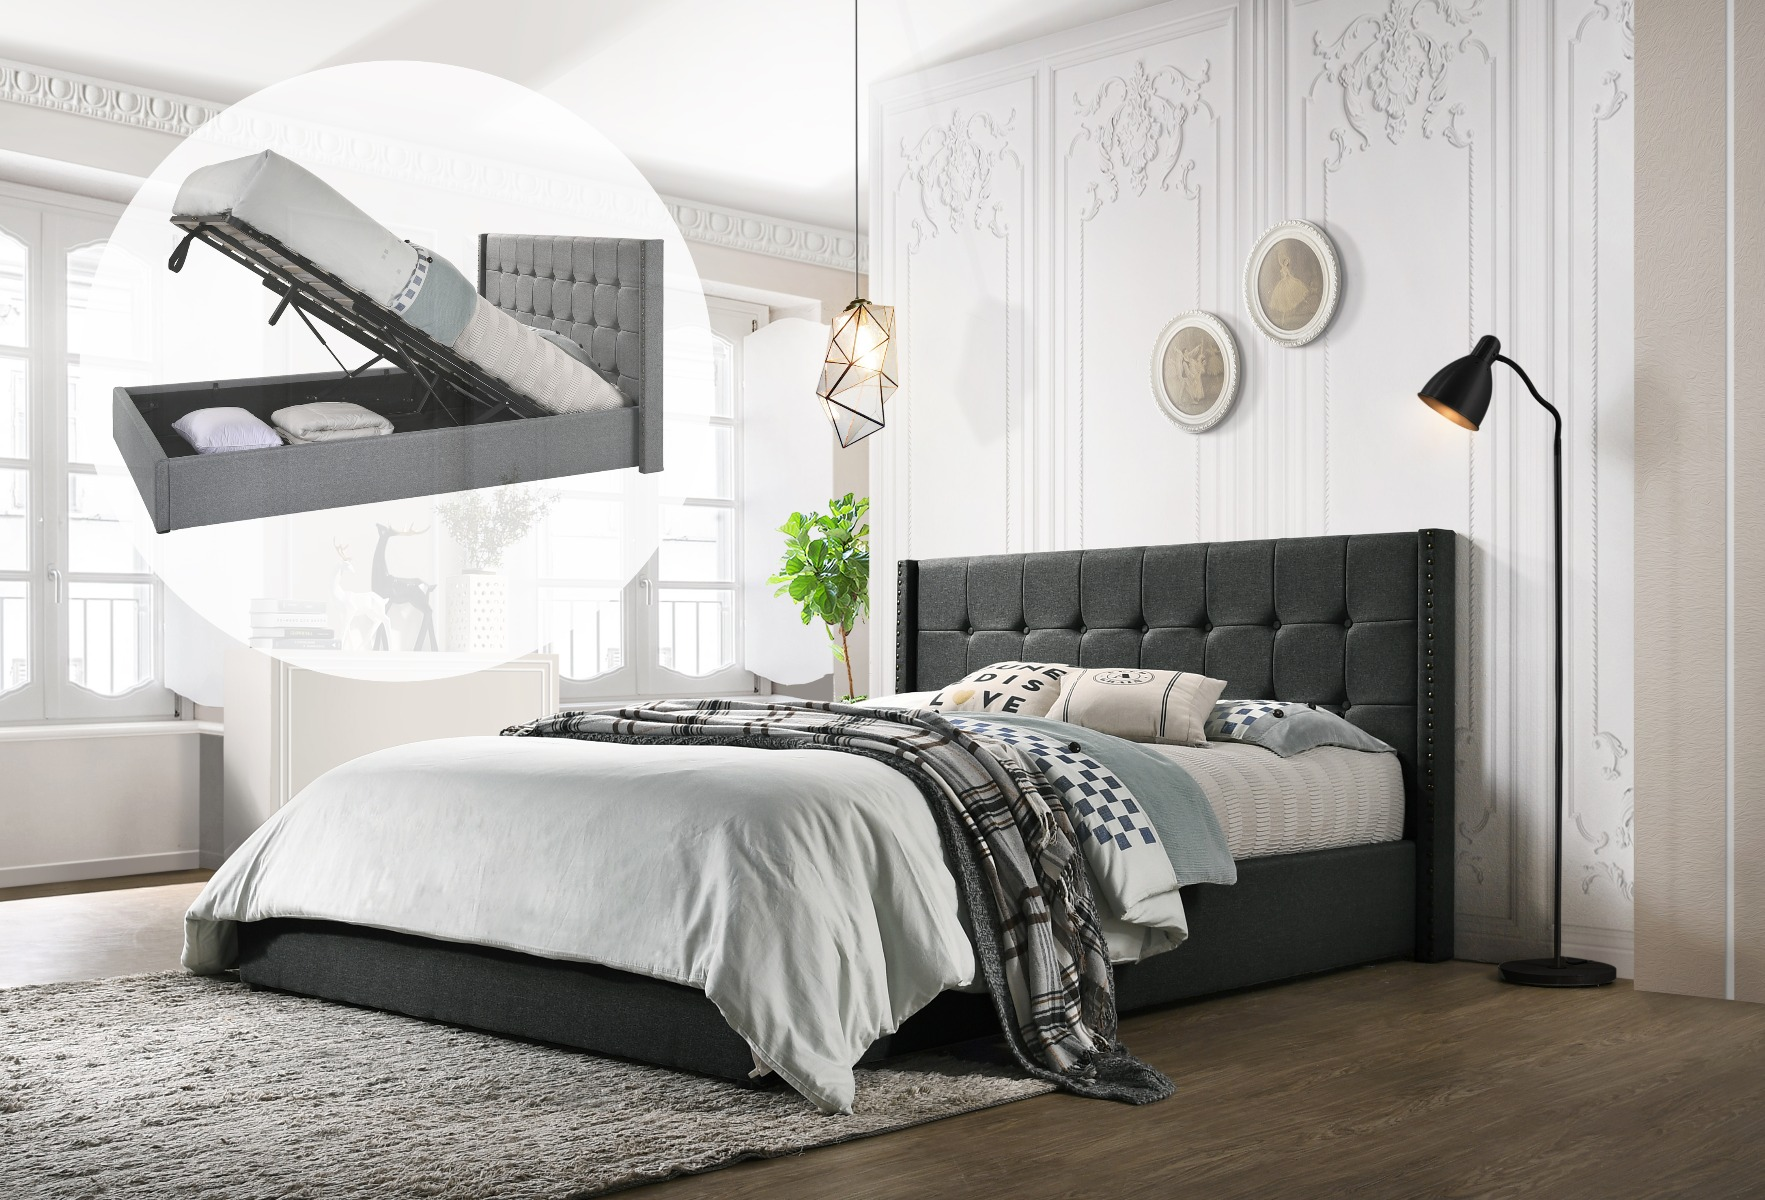 Queen Sized Winged Fabric Bed Frame with Gas Lift Storage in Charcoal